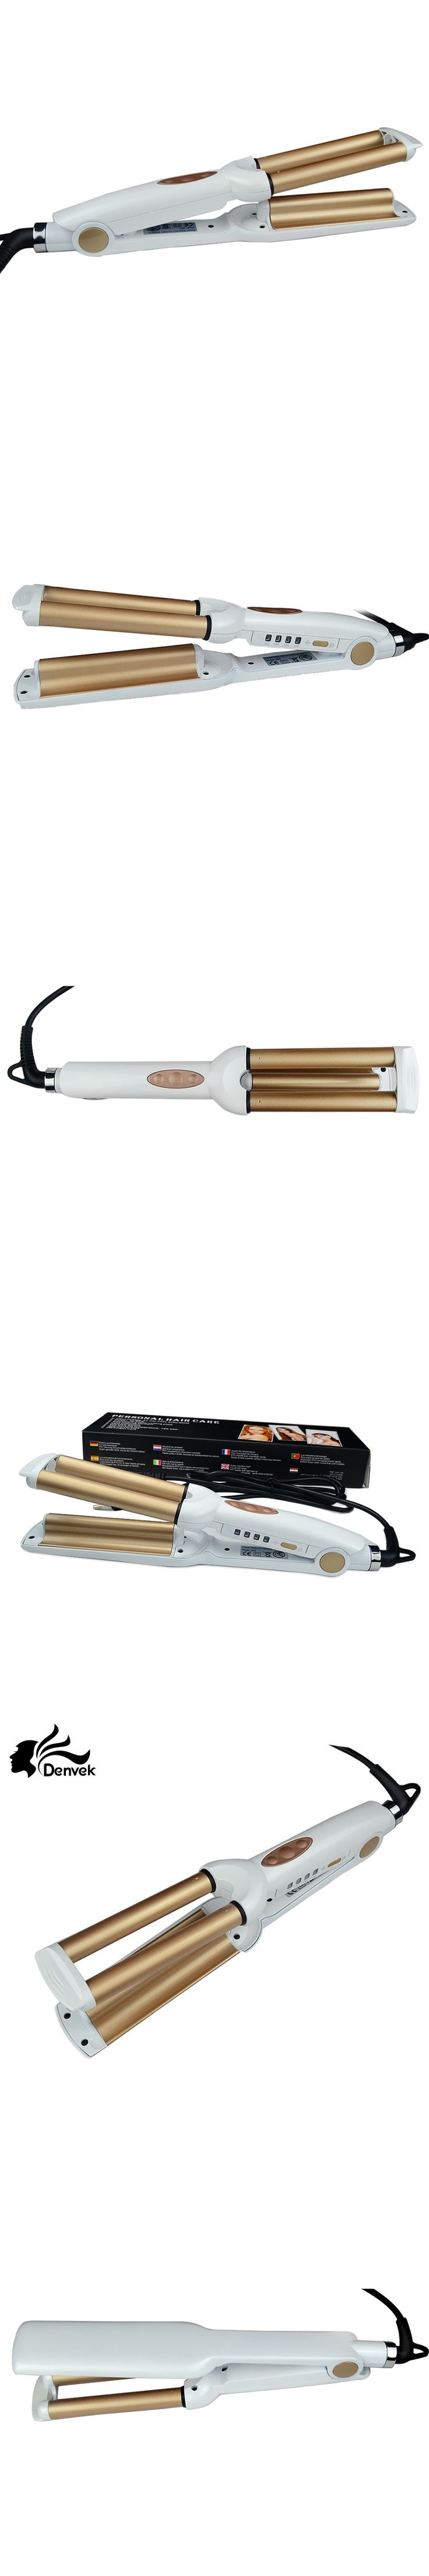 Professional curling iron 110-220V Hair Curling Iron Ceramic Triple Barrel Hair Curler Hair Waver Styling Tools Hair Style